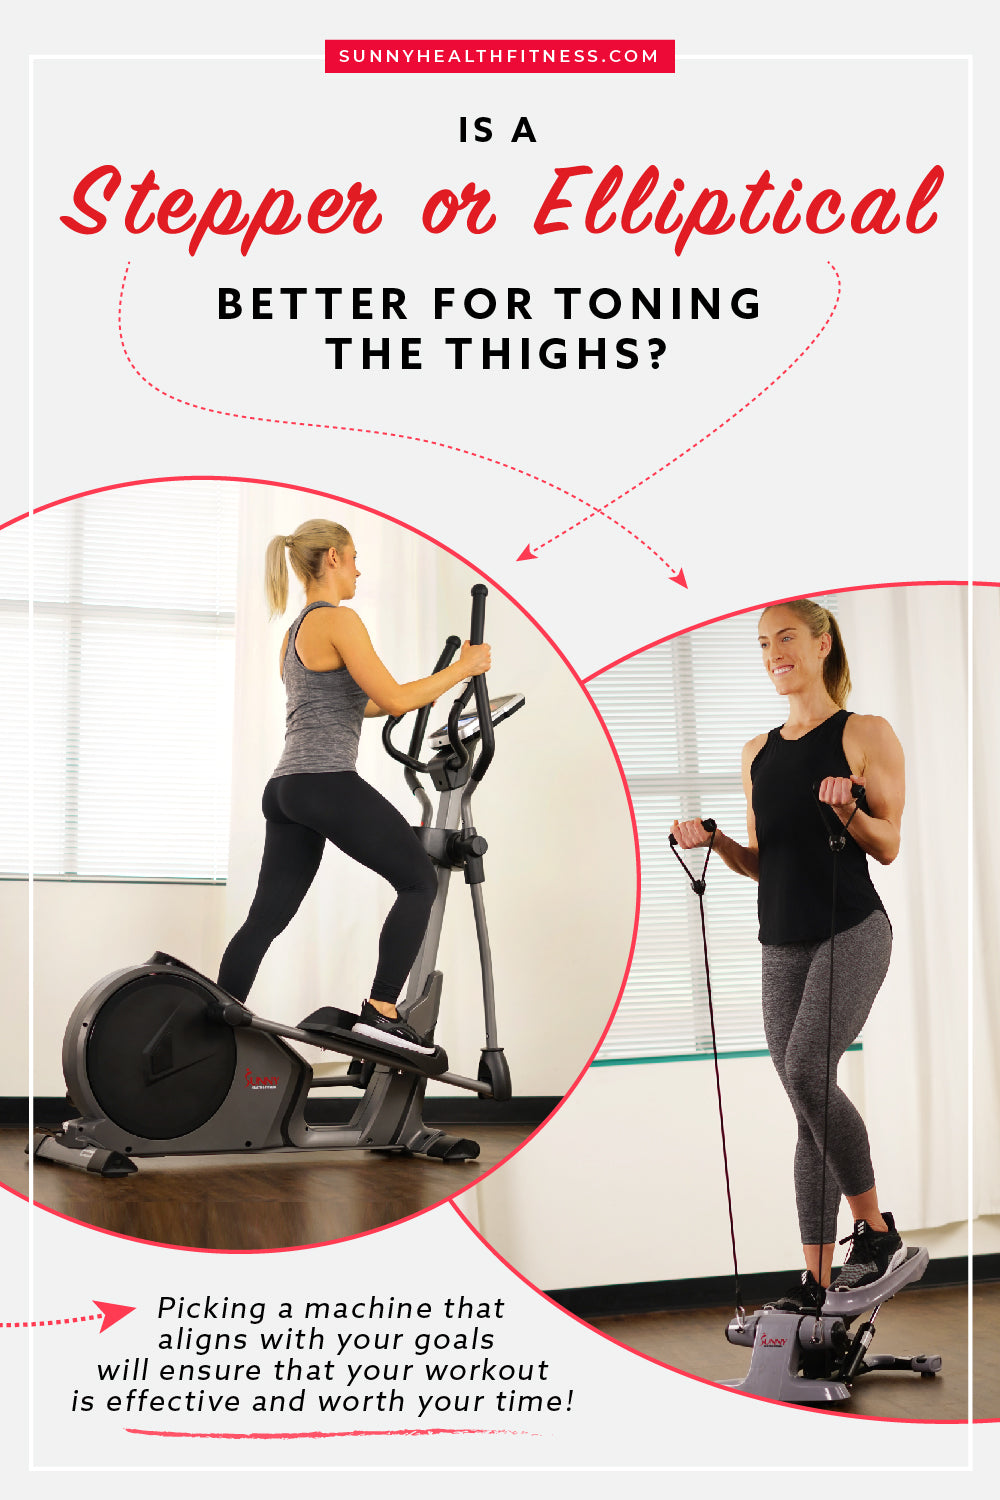 Stepper or Elliptical for Toning the Thighs Infographic